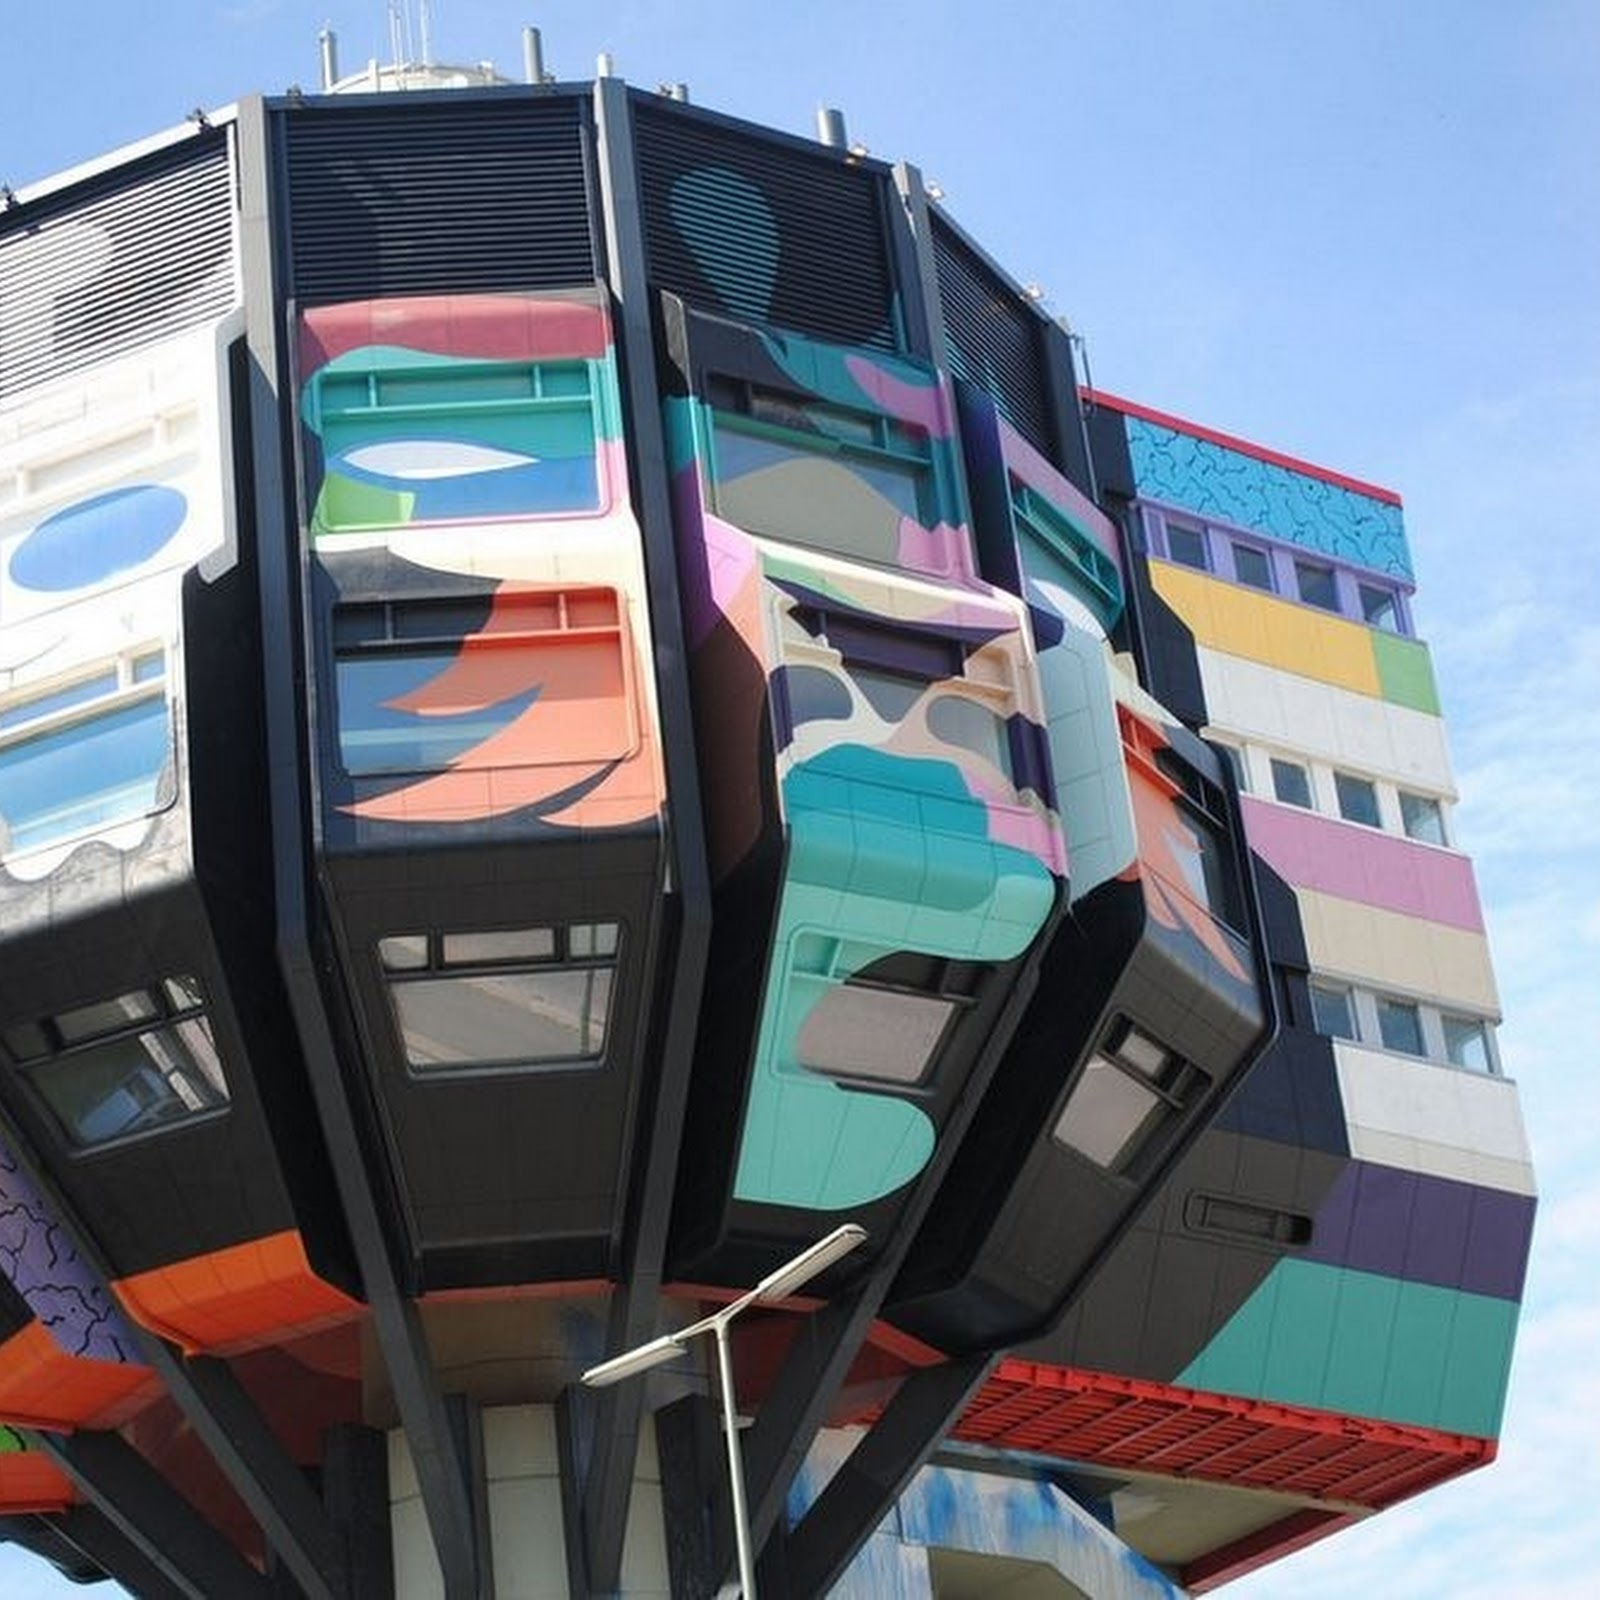 Bierpinsel: Berlin's Beer Brush Building